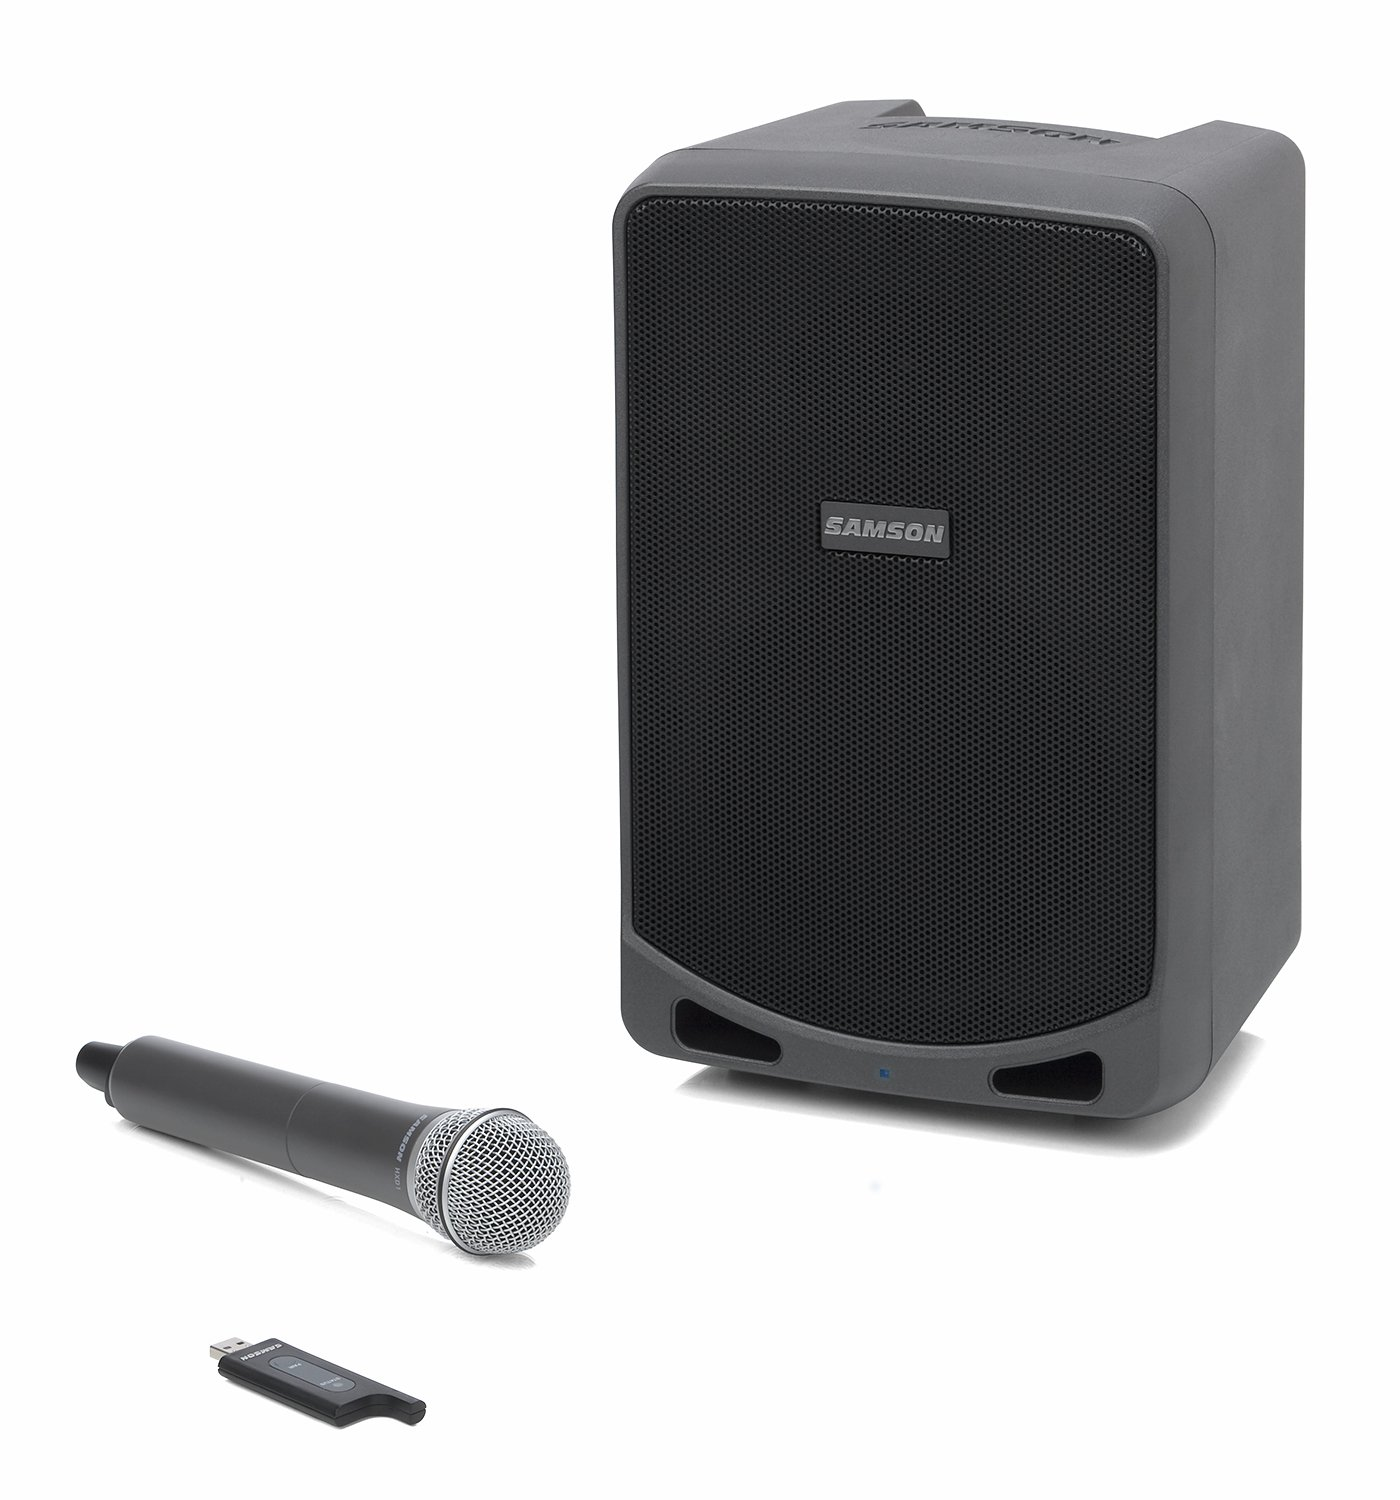 samson expedition xp106w rechargeable battery powered